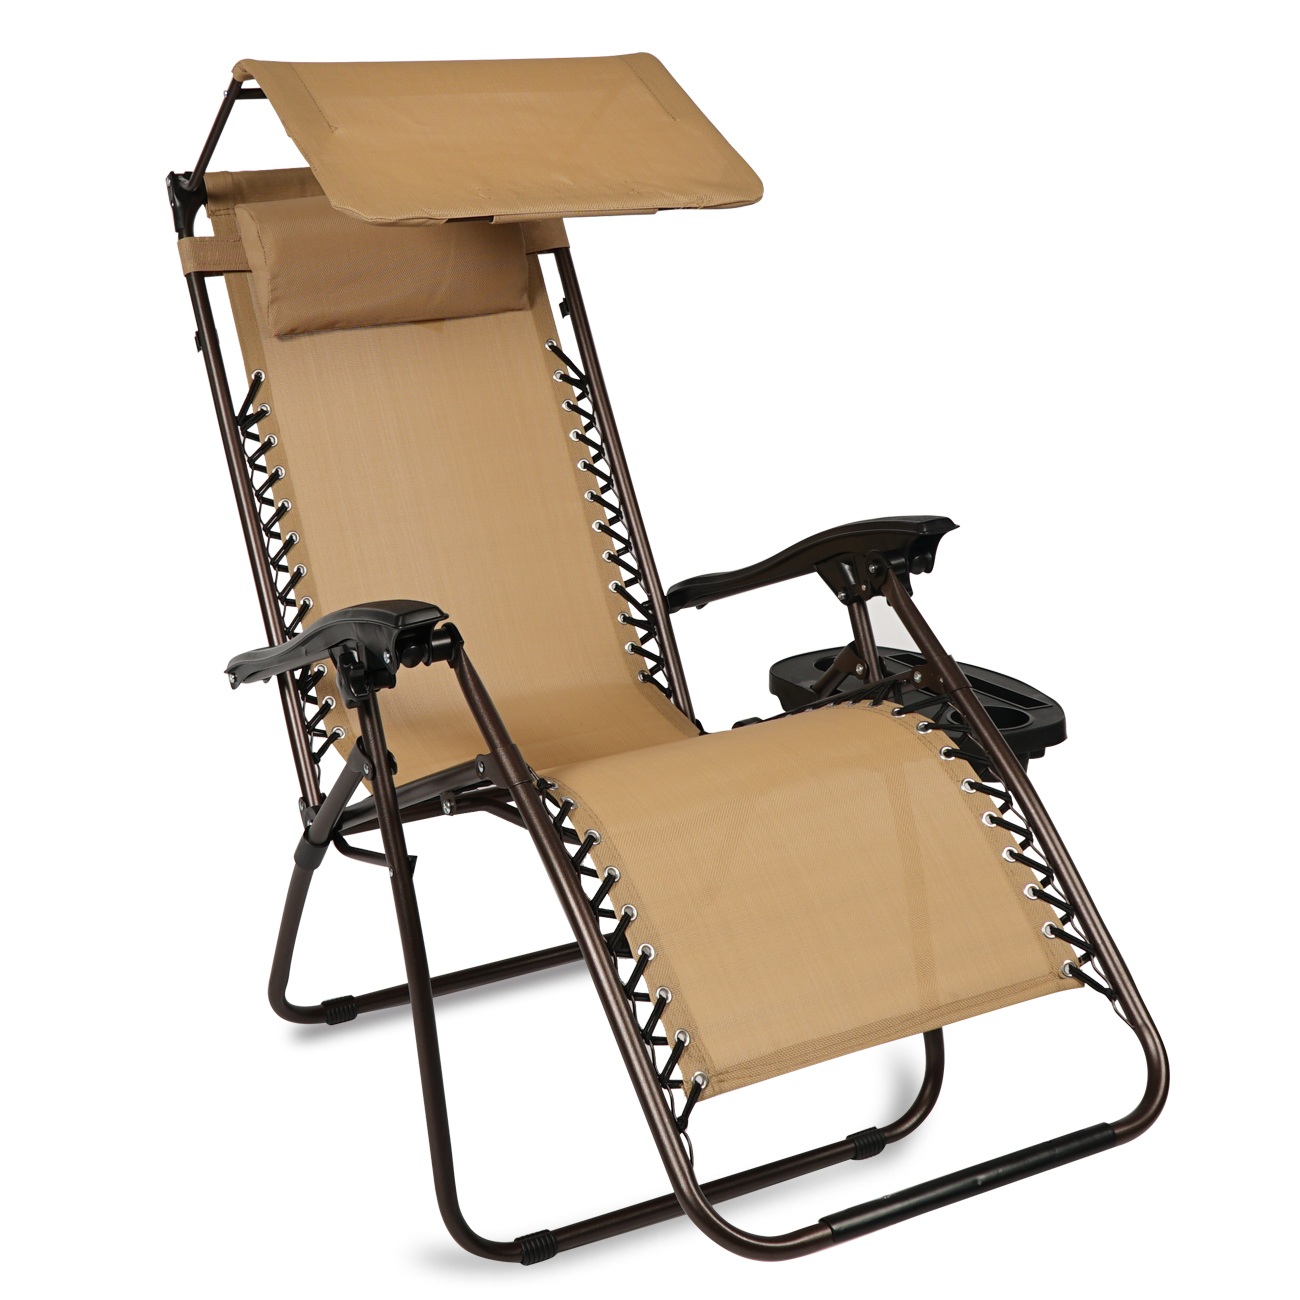 Folding Zero Gravity Lounge Chair W Canopy Cup